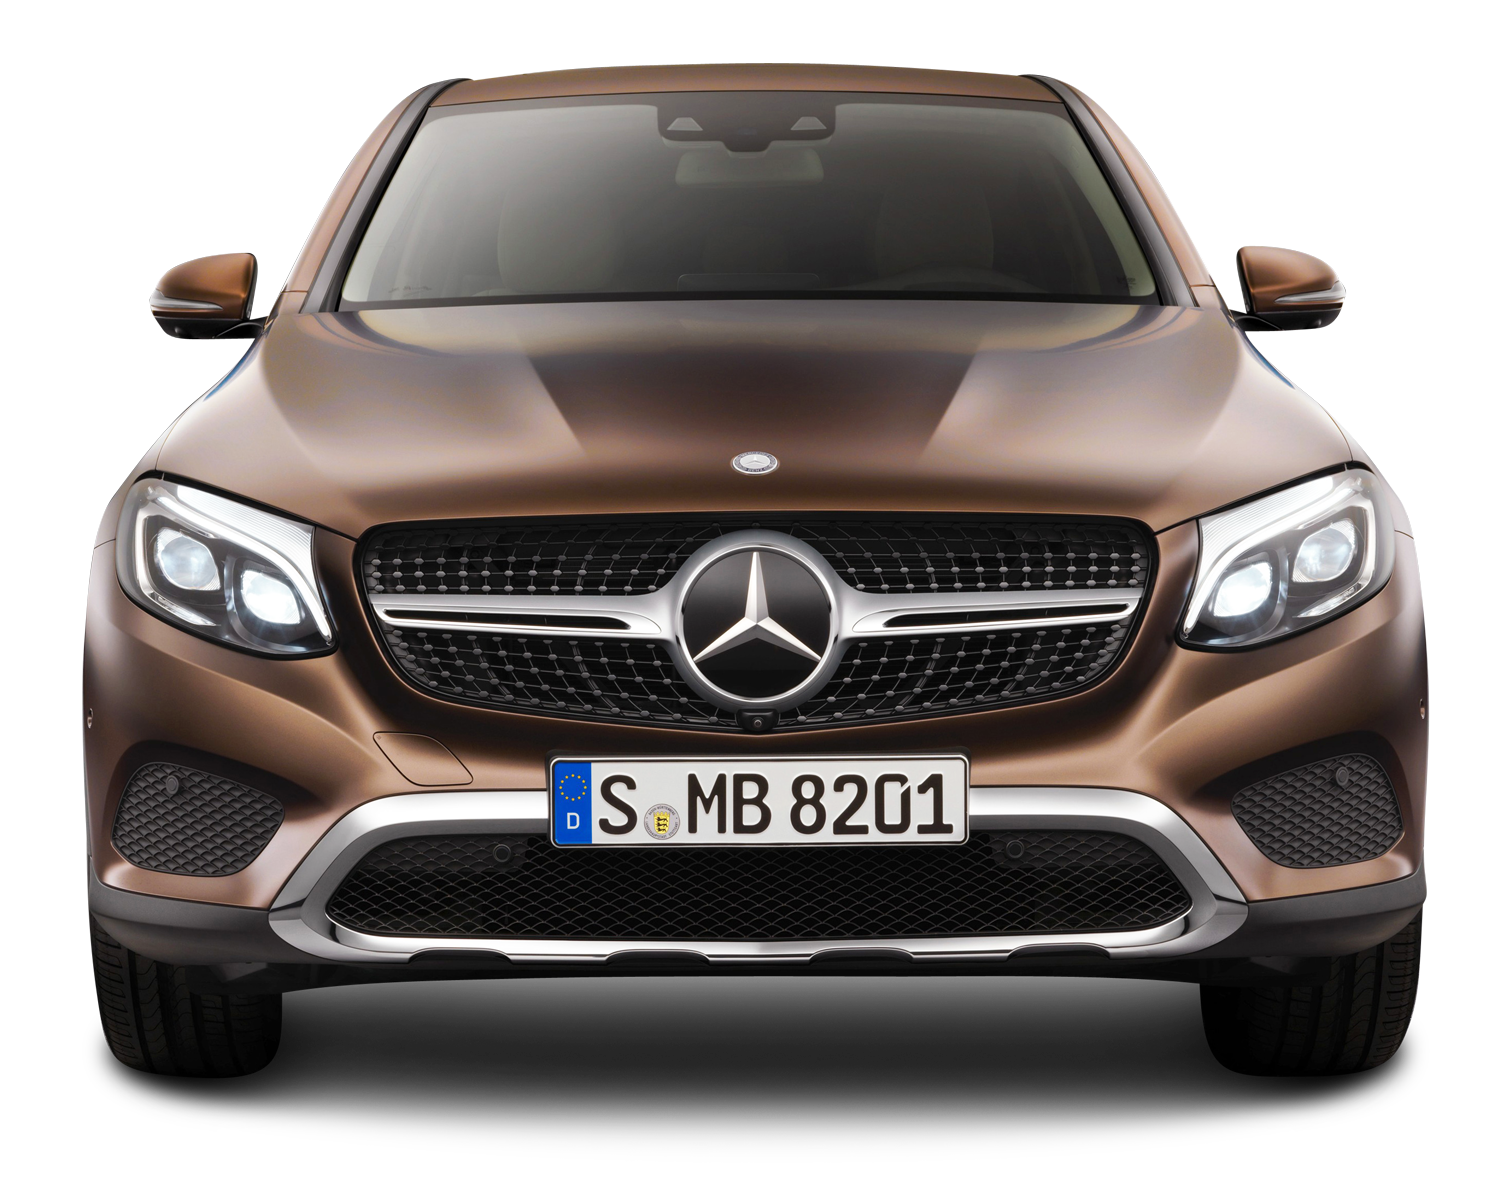 Brown Mercedes Benz Gle Coupe Front View Car Png Image